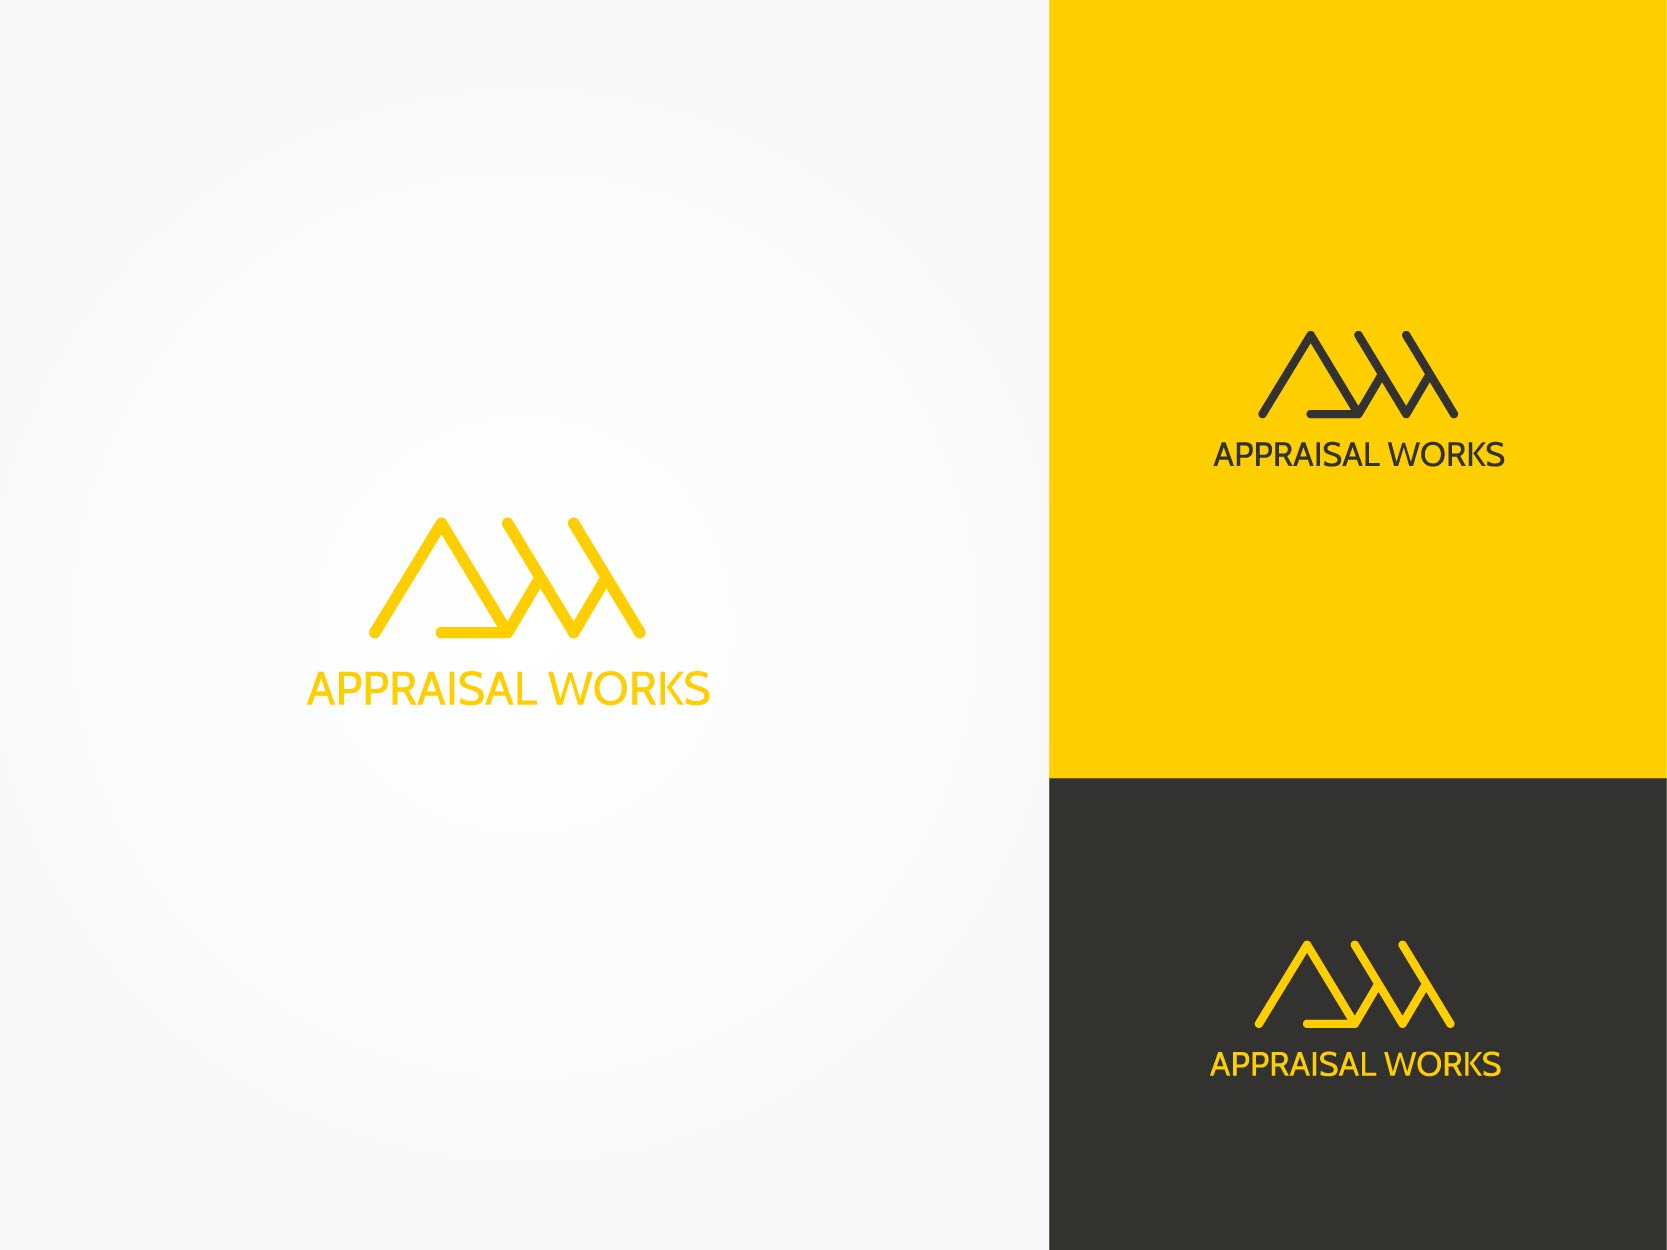 Logo Design by Osi Indra - Entry No. 25 in the Logo Design Contest Appraisal Works Logo Design.